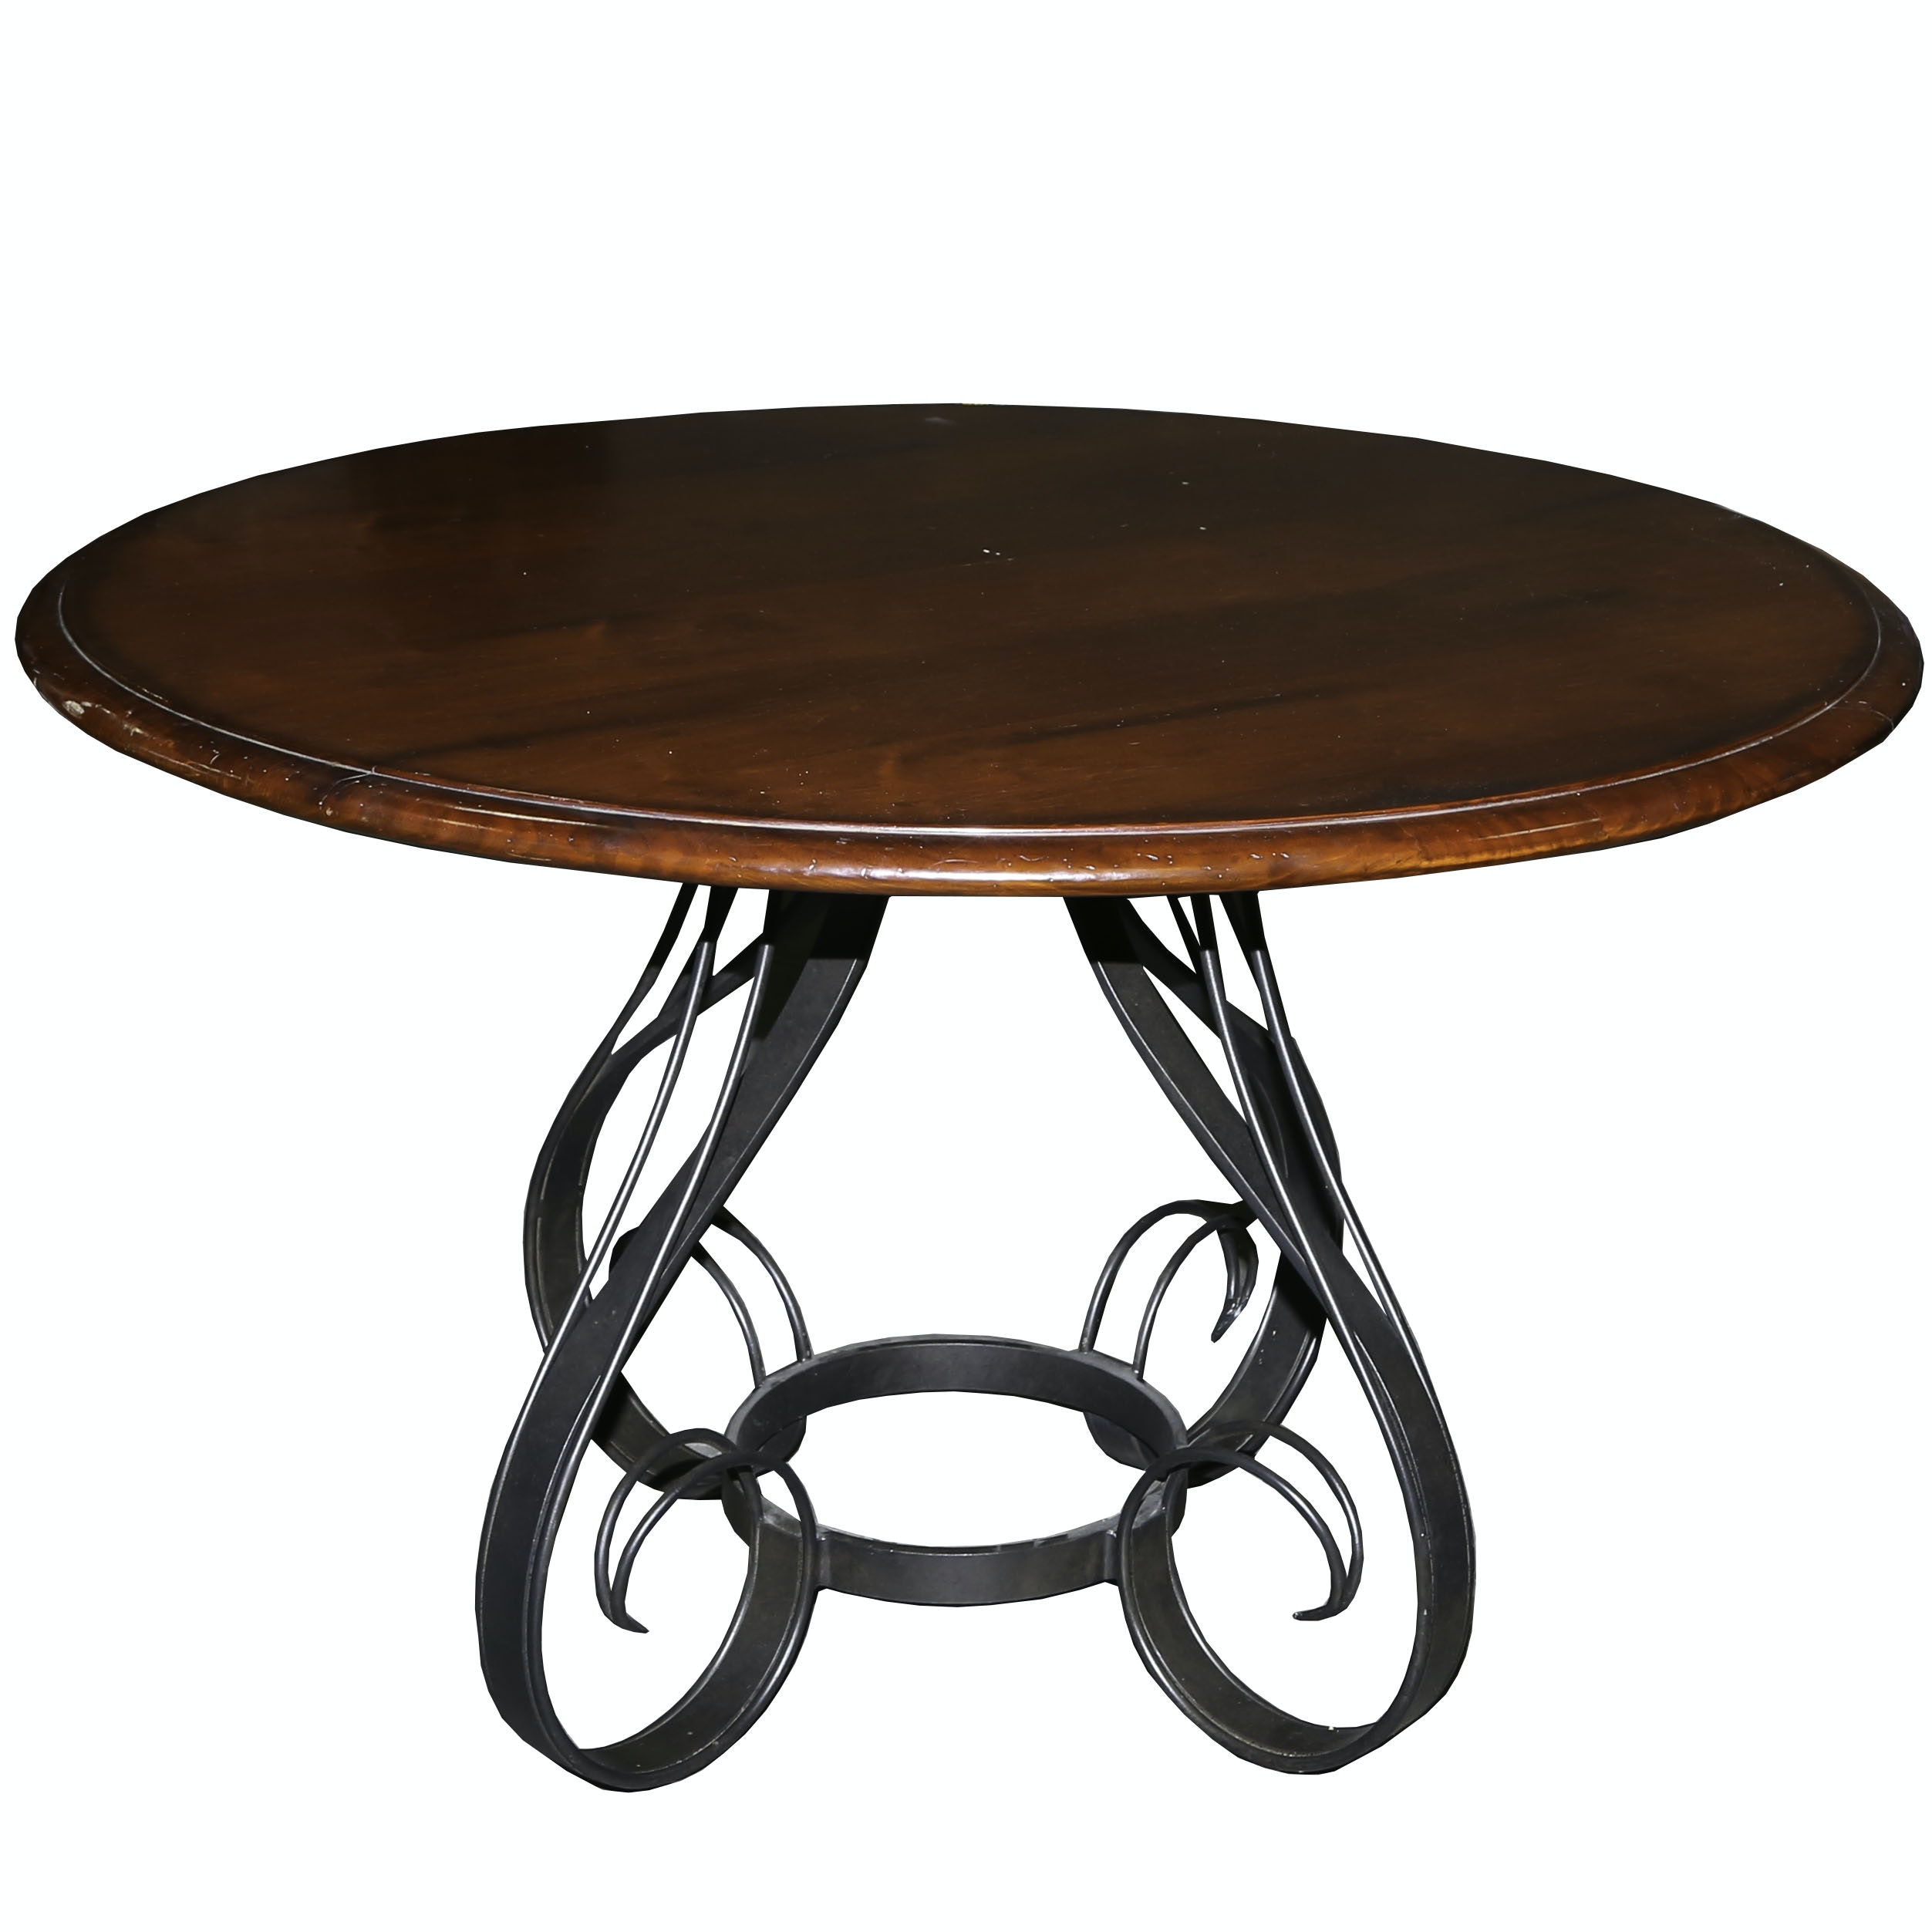 Round Pedestal Dining Table by Milling Road